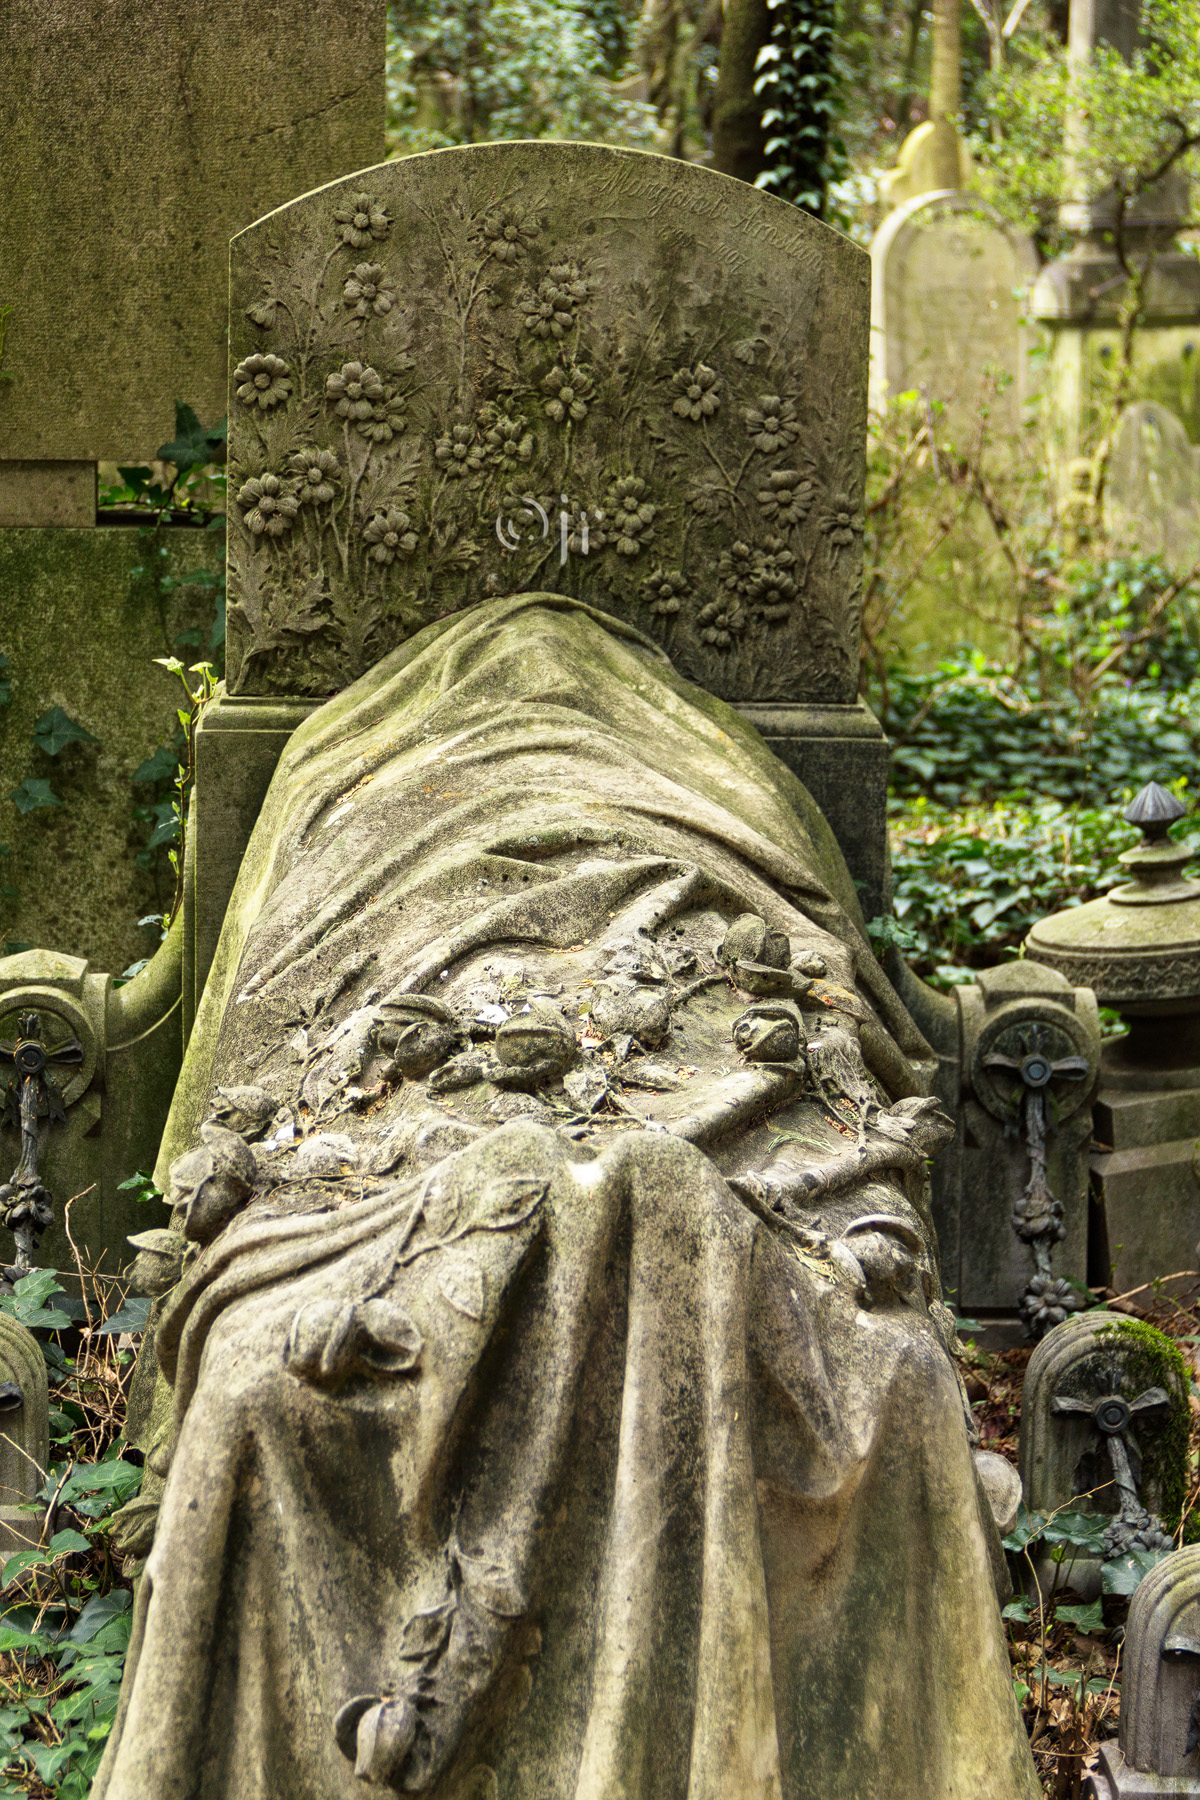 Grabstein Margarete Arnstein, 03. September 1907, jüdischer Friedhof Triest, Foto März 2016